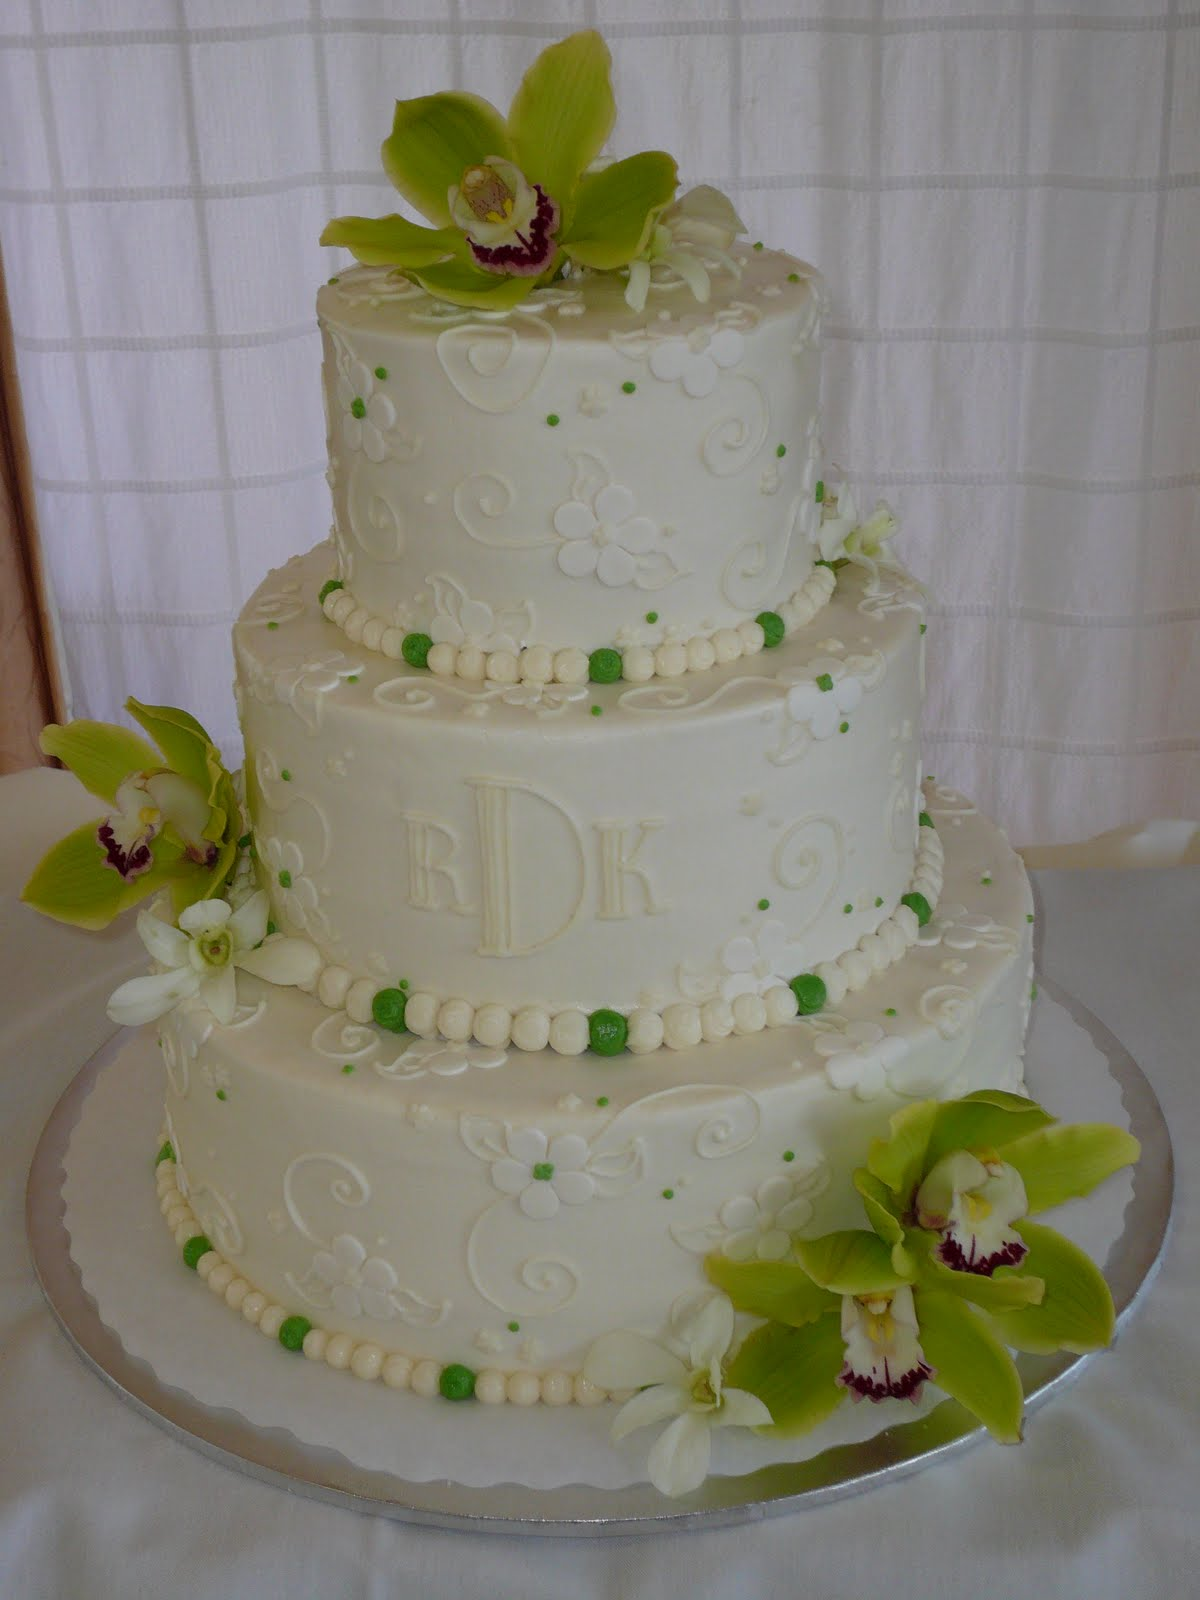 ... Wedding Cakes Ideas With Butter Cream Frosting | Food and drink